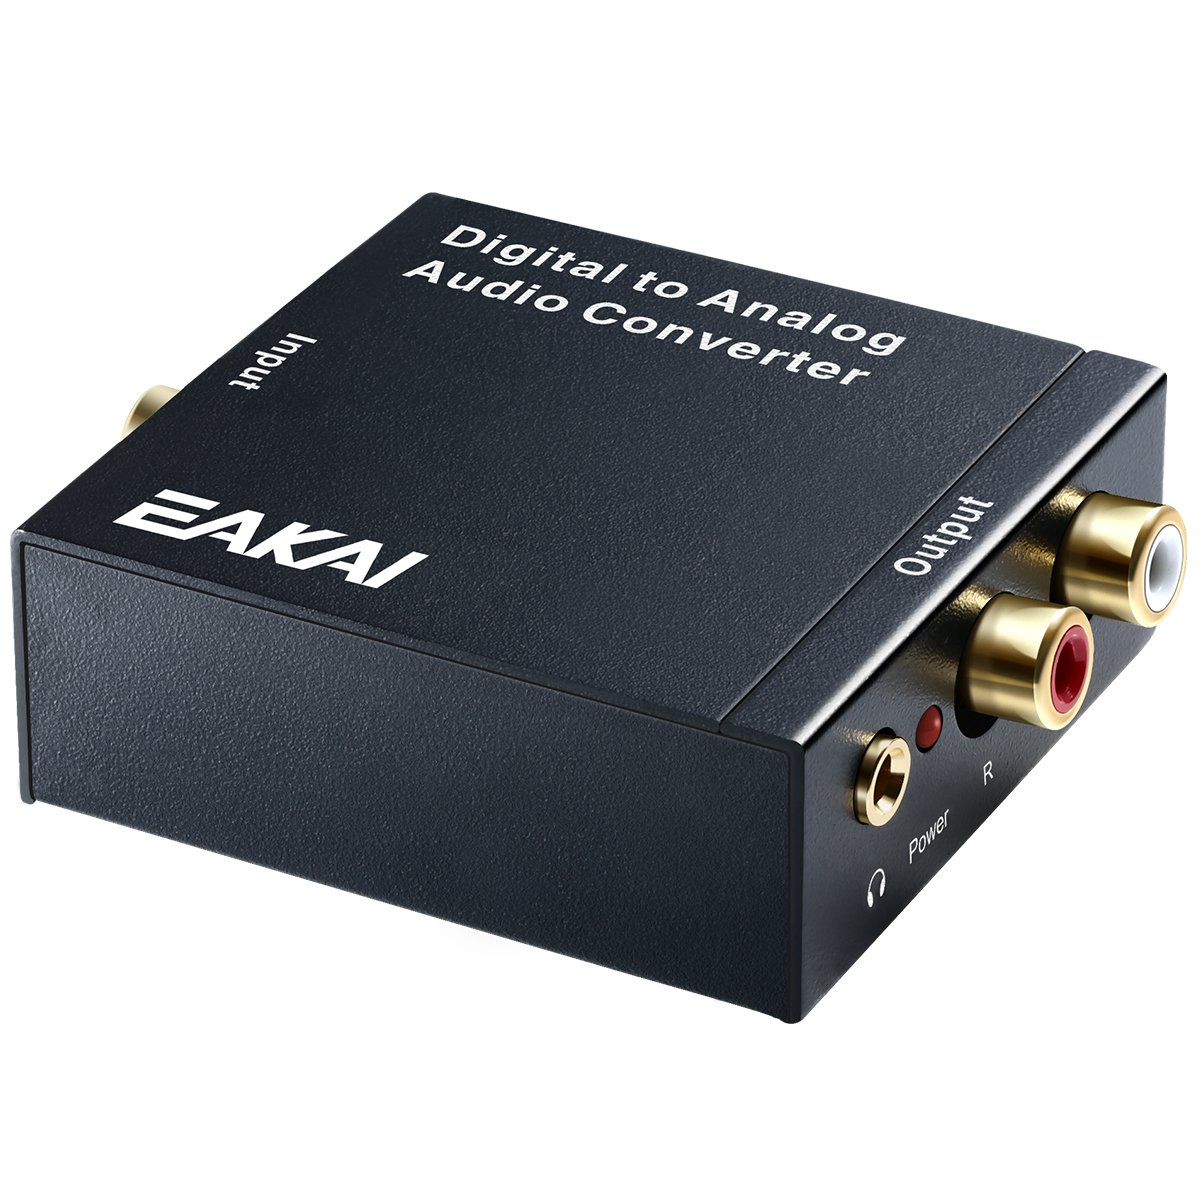 EAKAI Digital Optical Coax to Analog RCA Audio Converter with 3.5 mm Jack, 24-bit DAC with DC 5V Power Supply Adapter [USA UL Licensed] by EAKAI (Image #1)